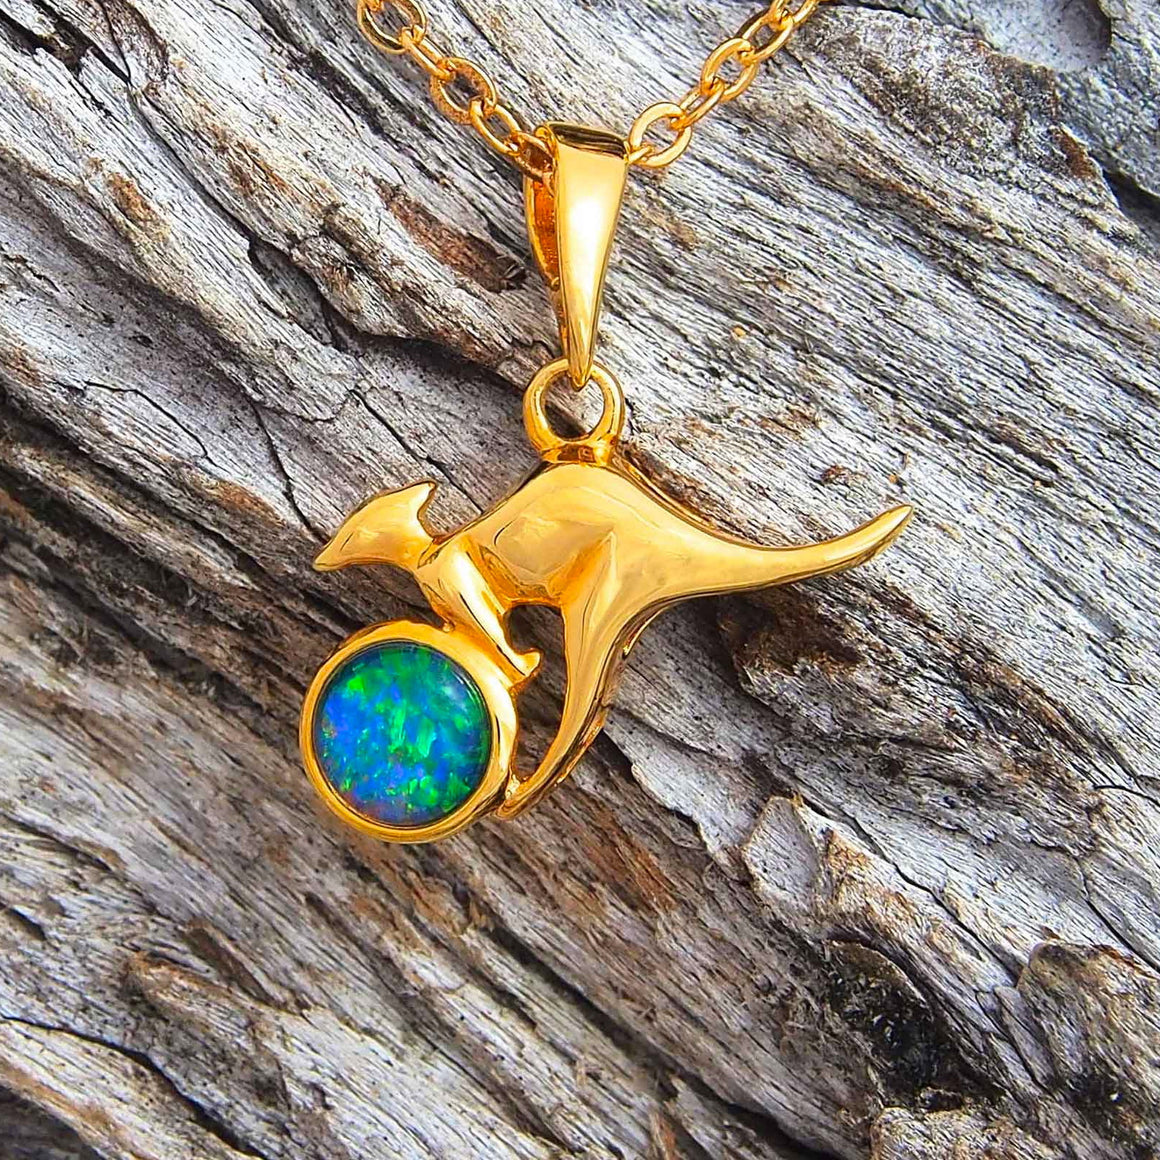 Gold plated sterling silver kangaroo design necklace pendant bezel set with a green, blue and red round triplet opal